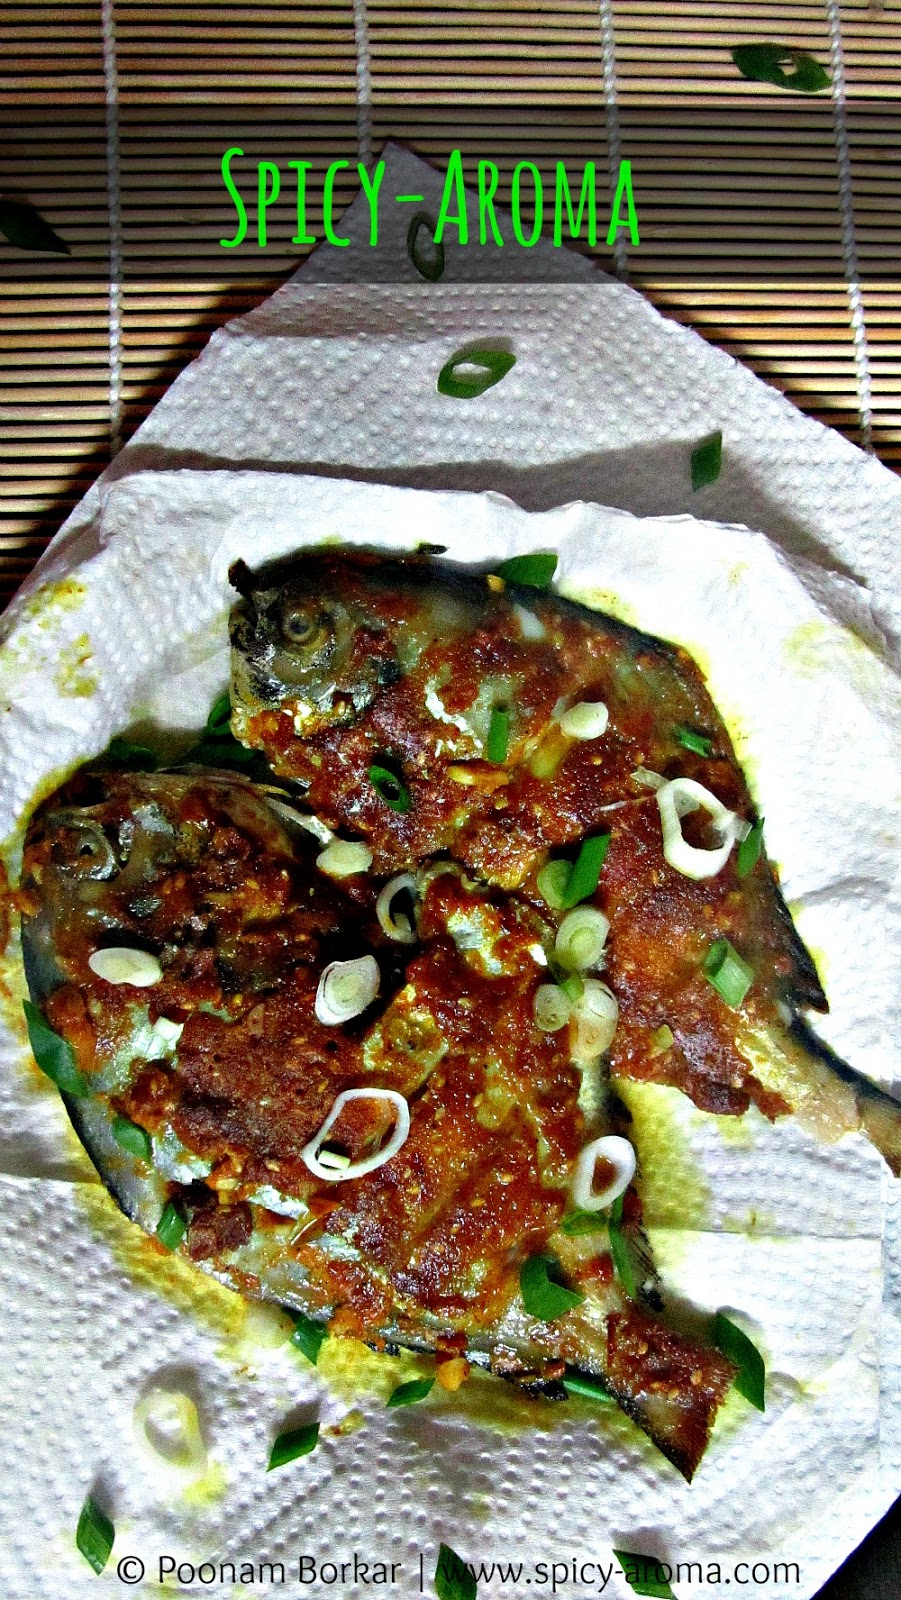 Simple fish fry recipe spicy aroma for Fish fry ingredients